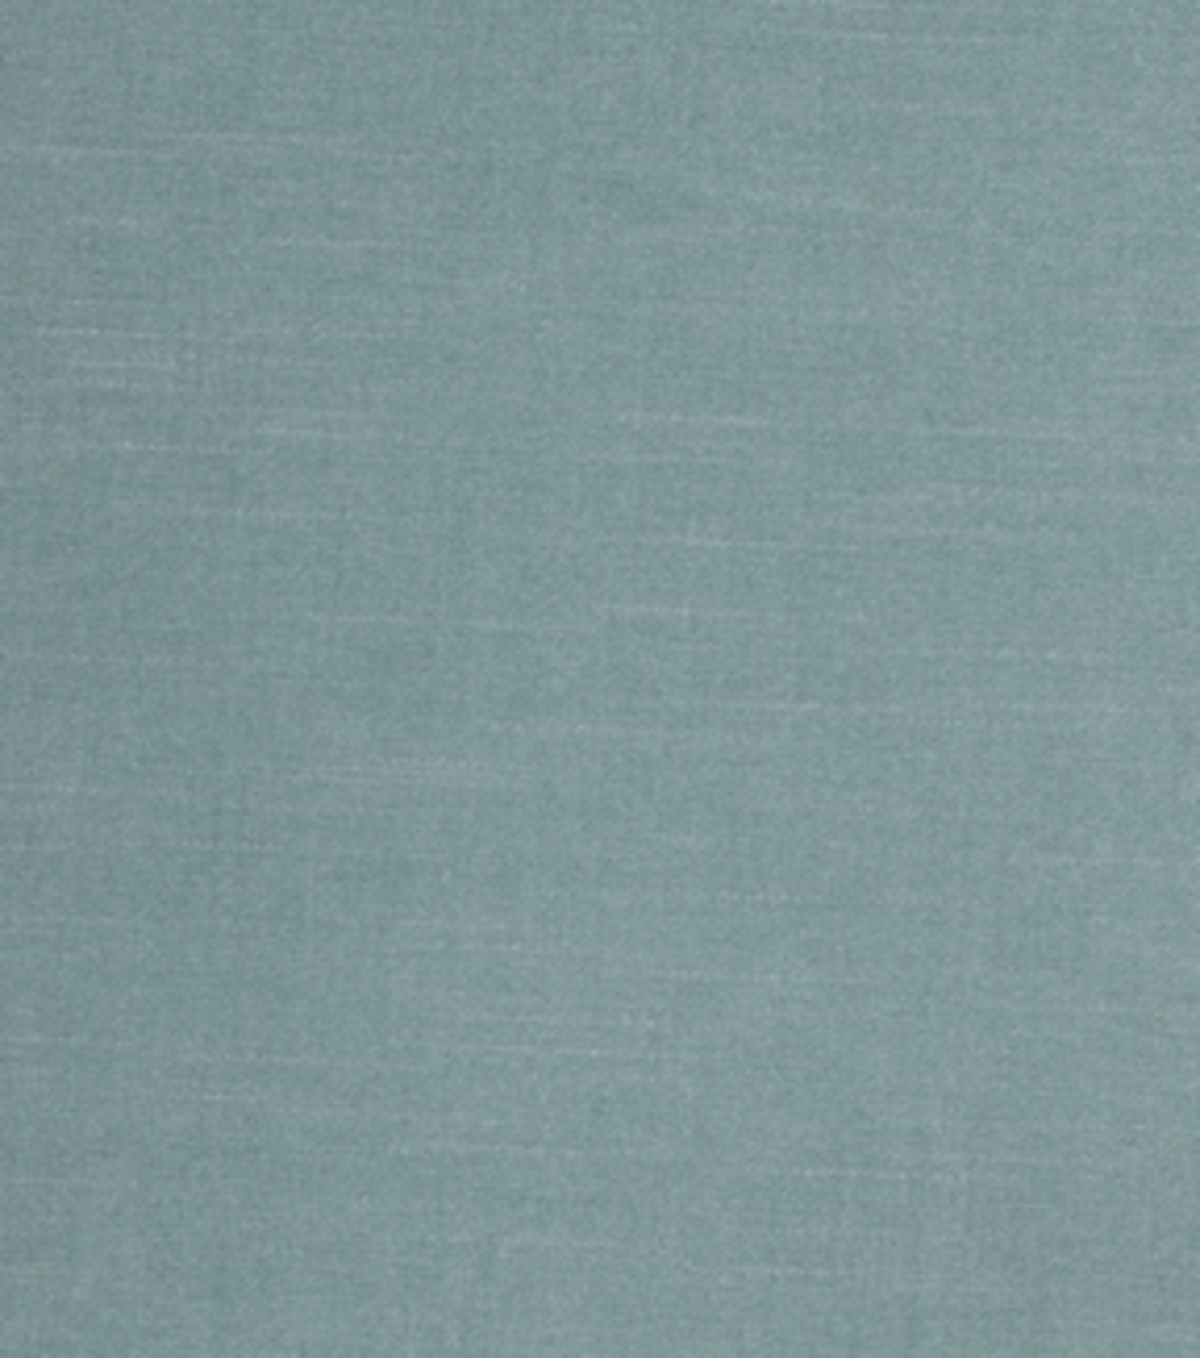 Home Decor 8\u0022x8\u0022 Fabric Swatch-Richloom Studio Silky Teal